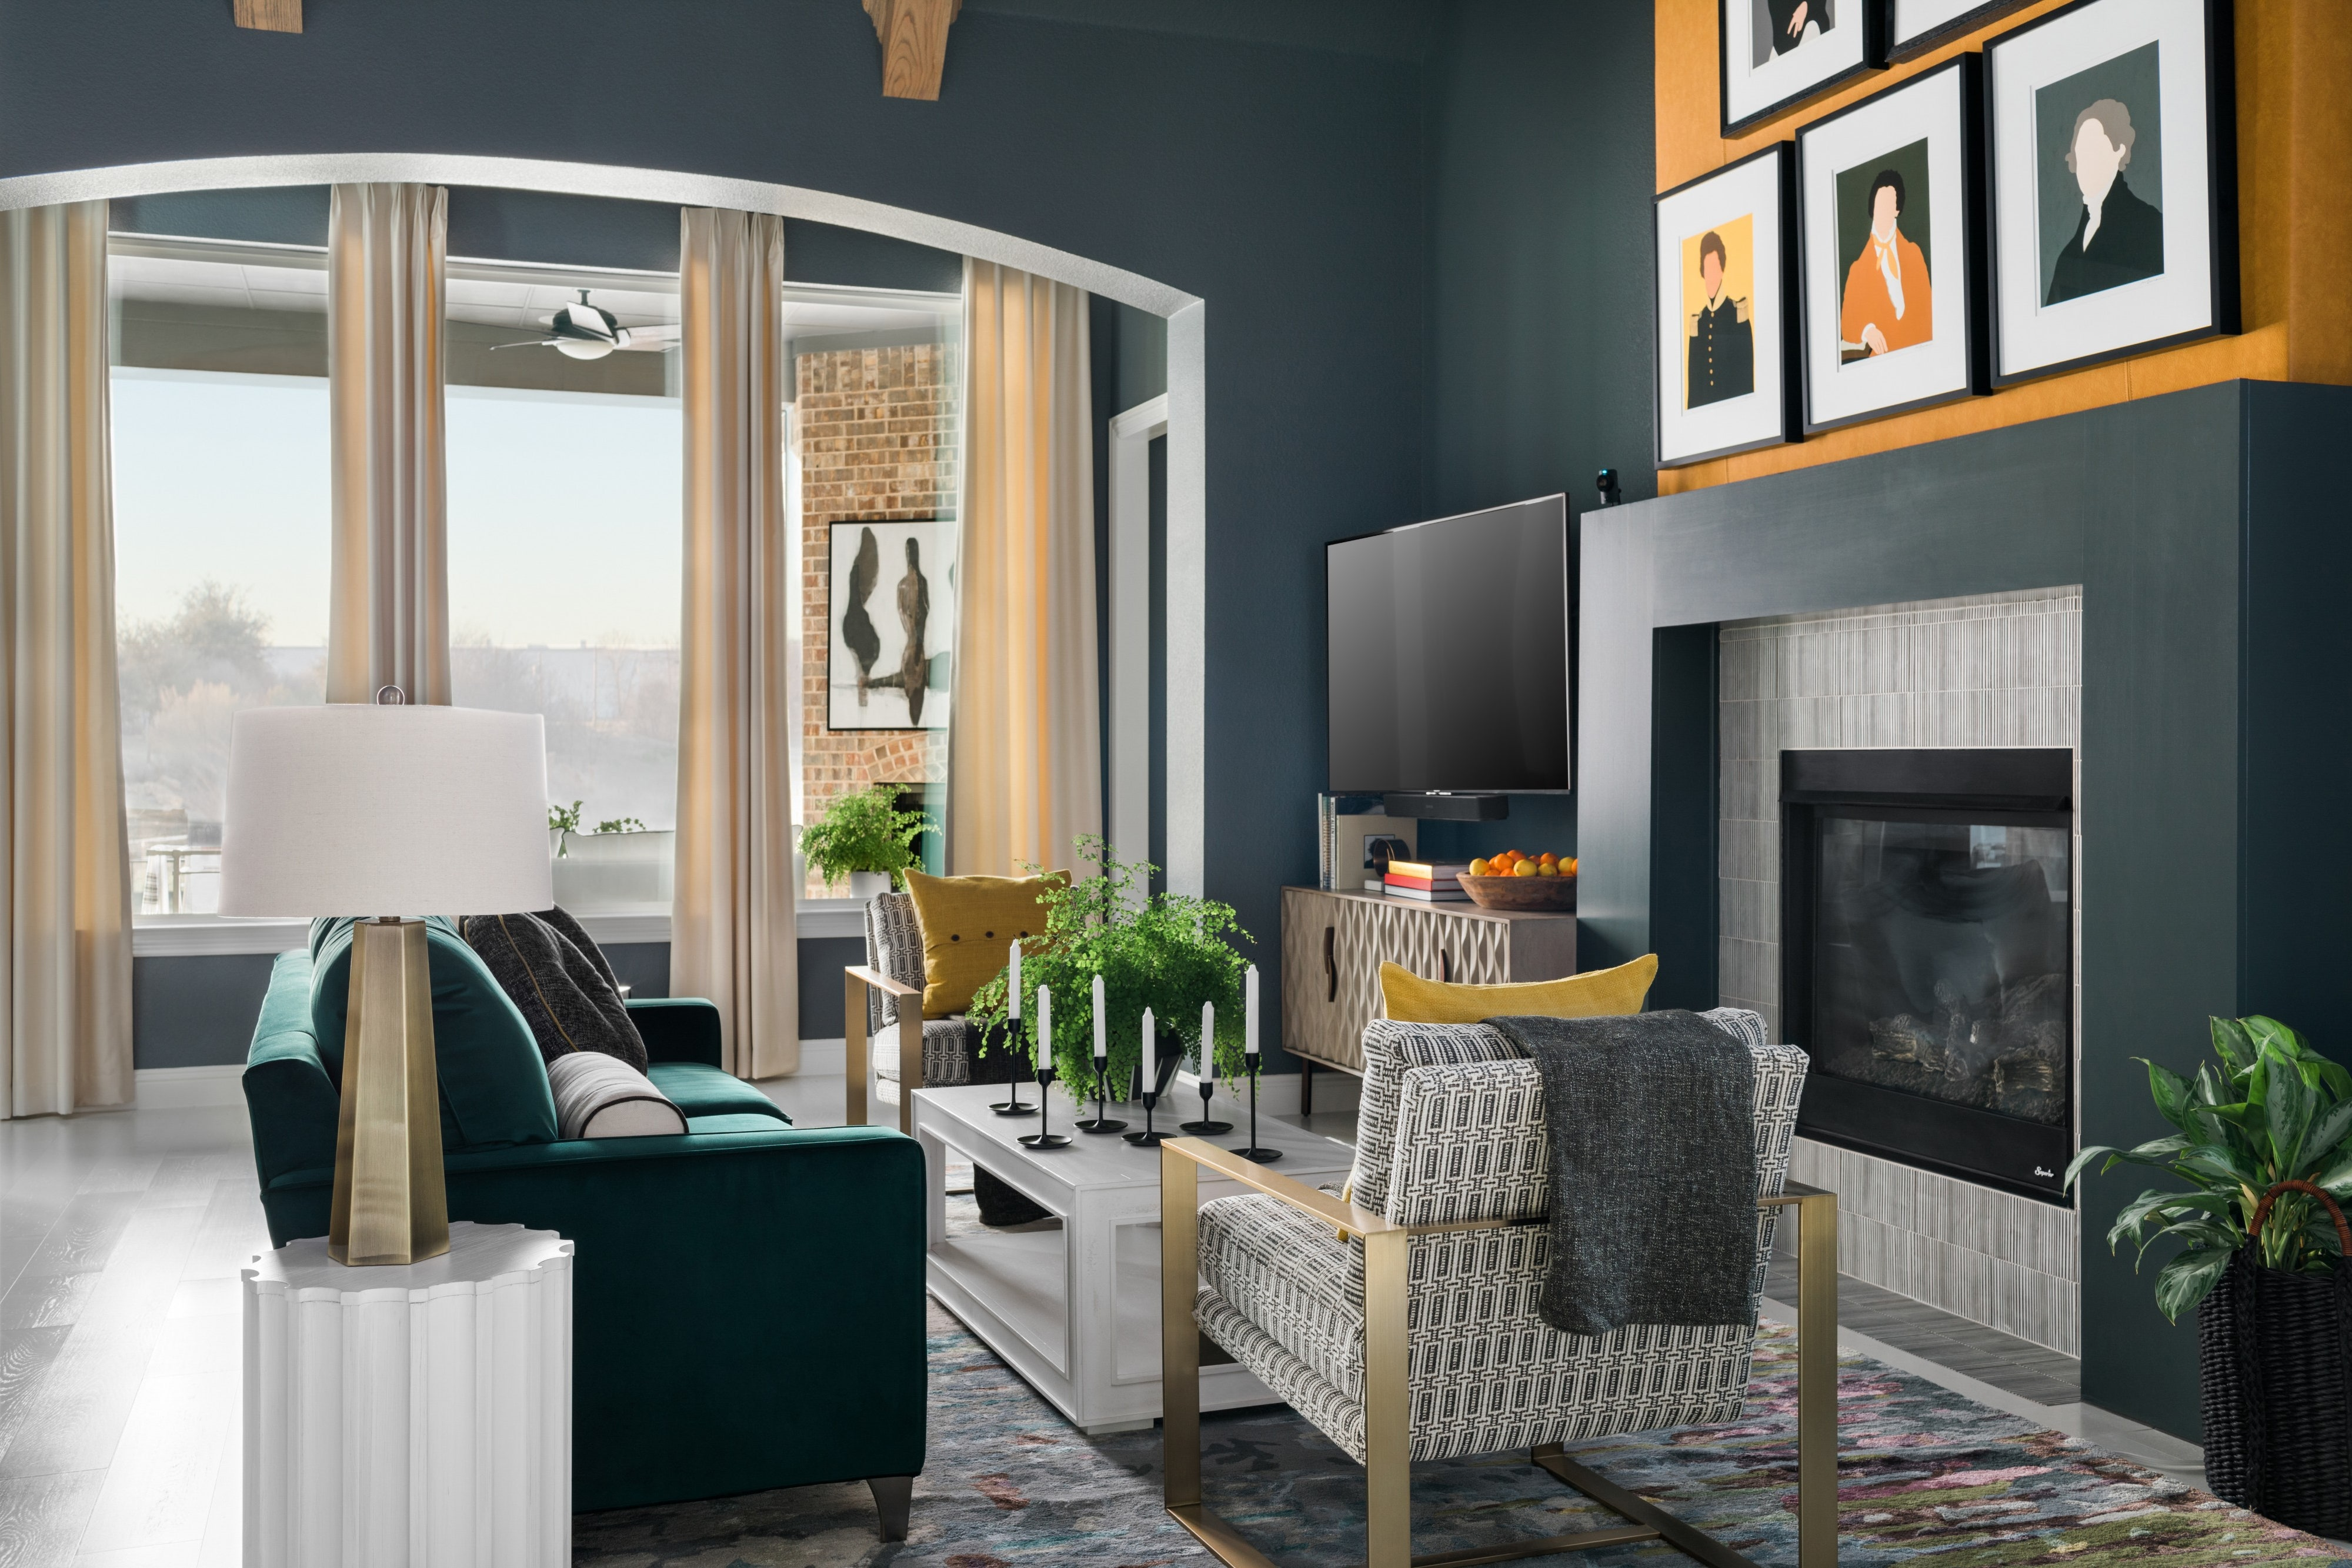 How to Create a Sense of Balance in Your Home, According to an Interior Designer (Partner)